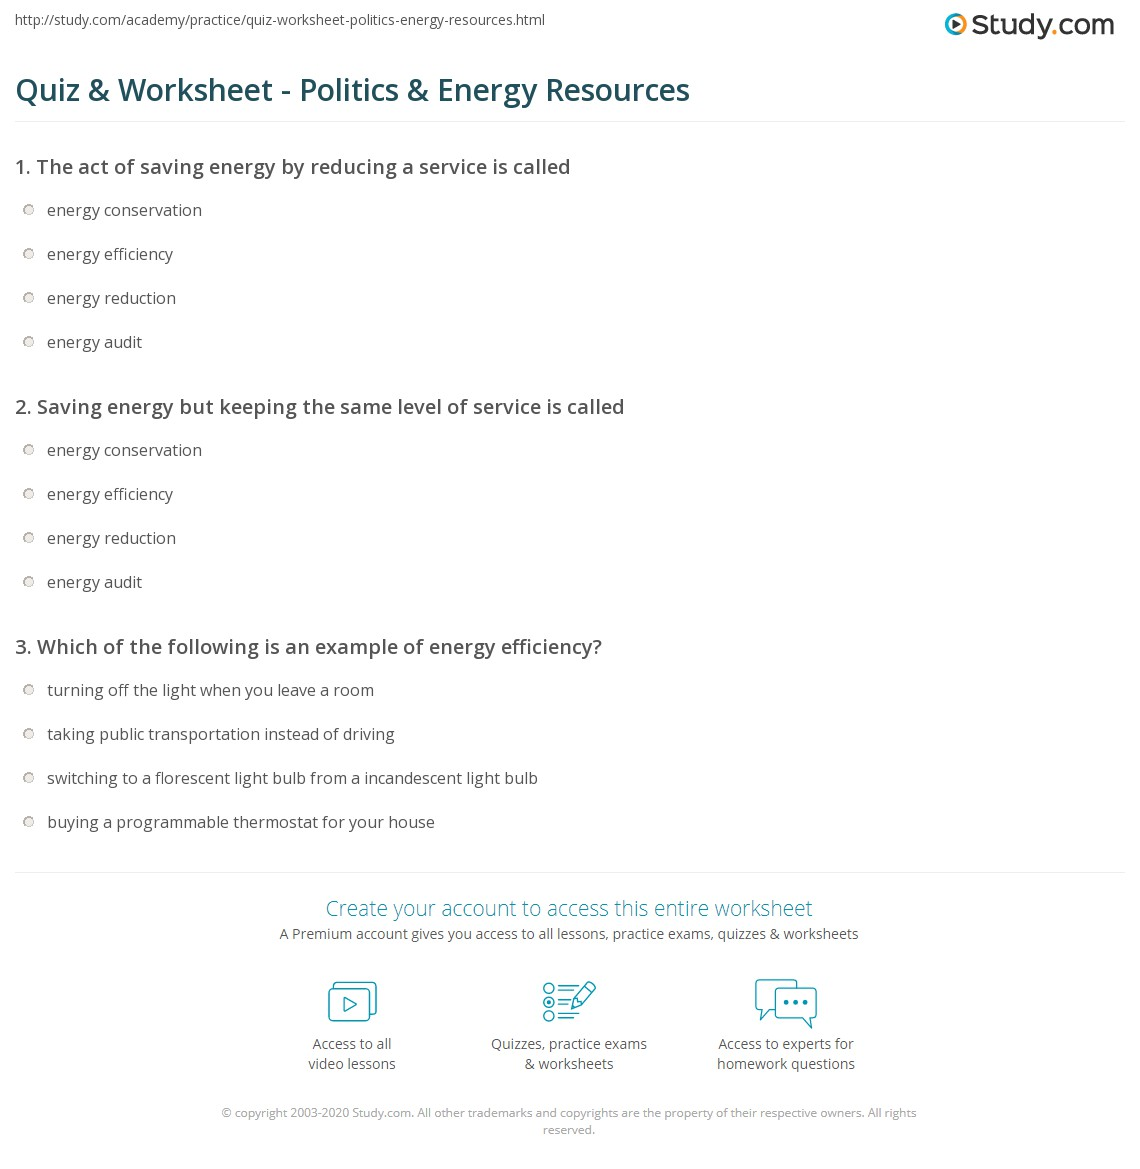 Worksheets Energy Resources Worksheet quiz worksheet politics energy resources study com print the of conservation efficiency renewable worksheet